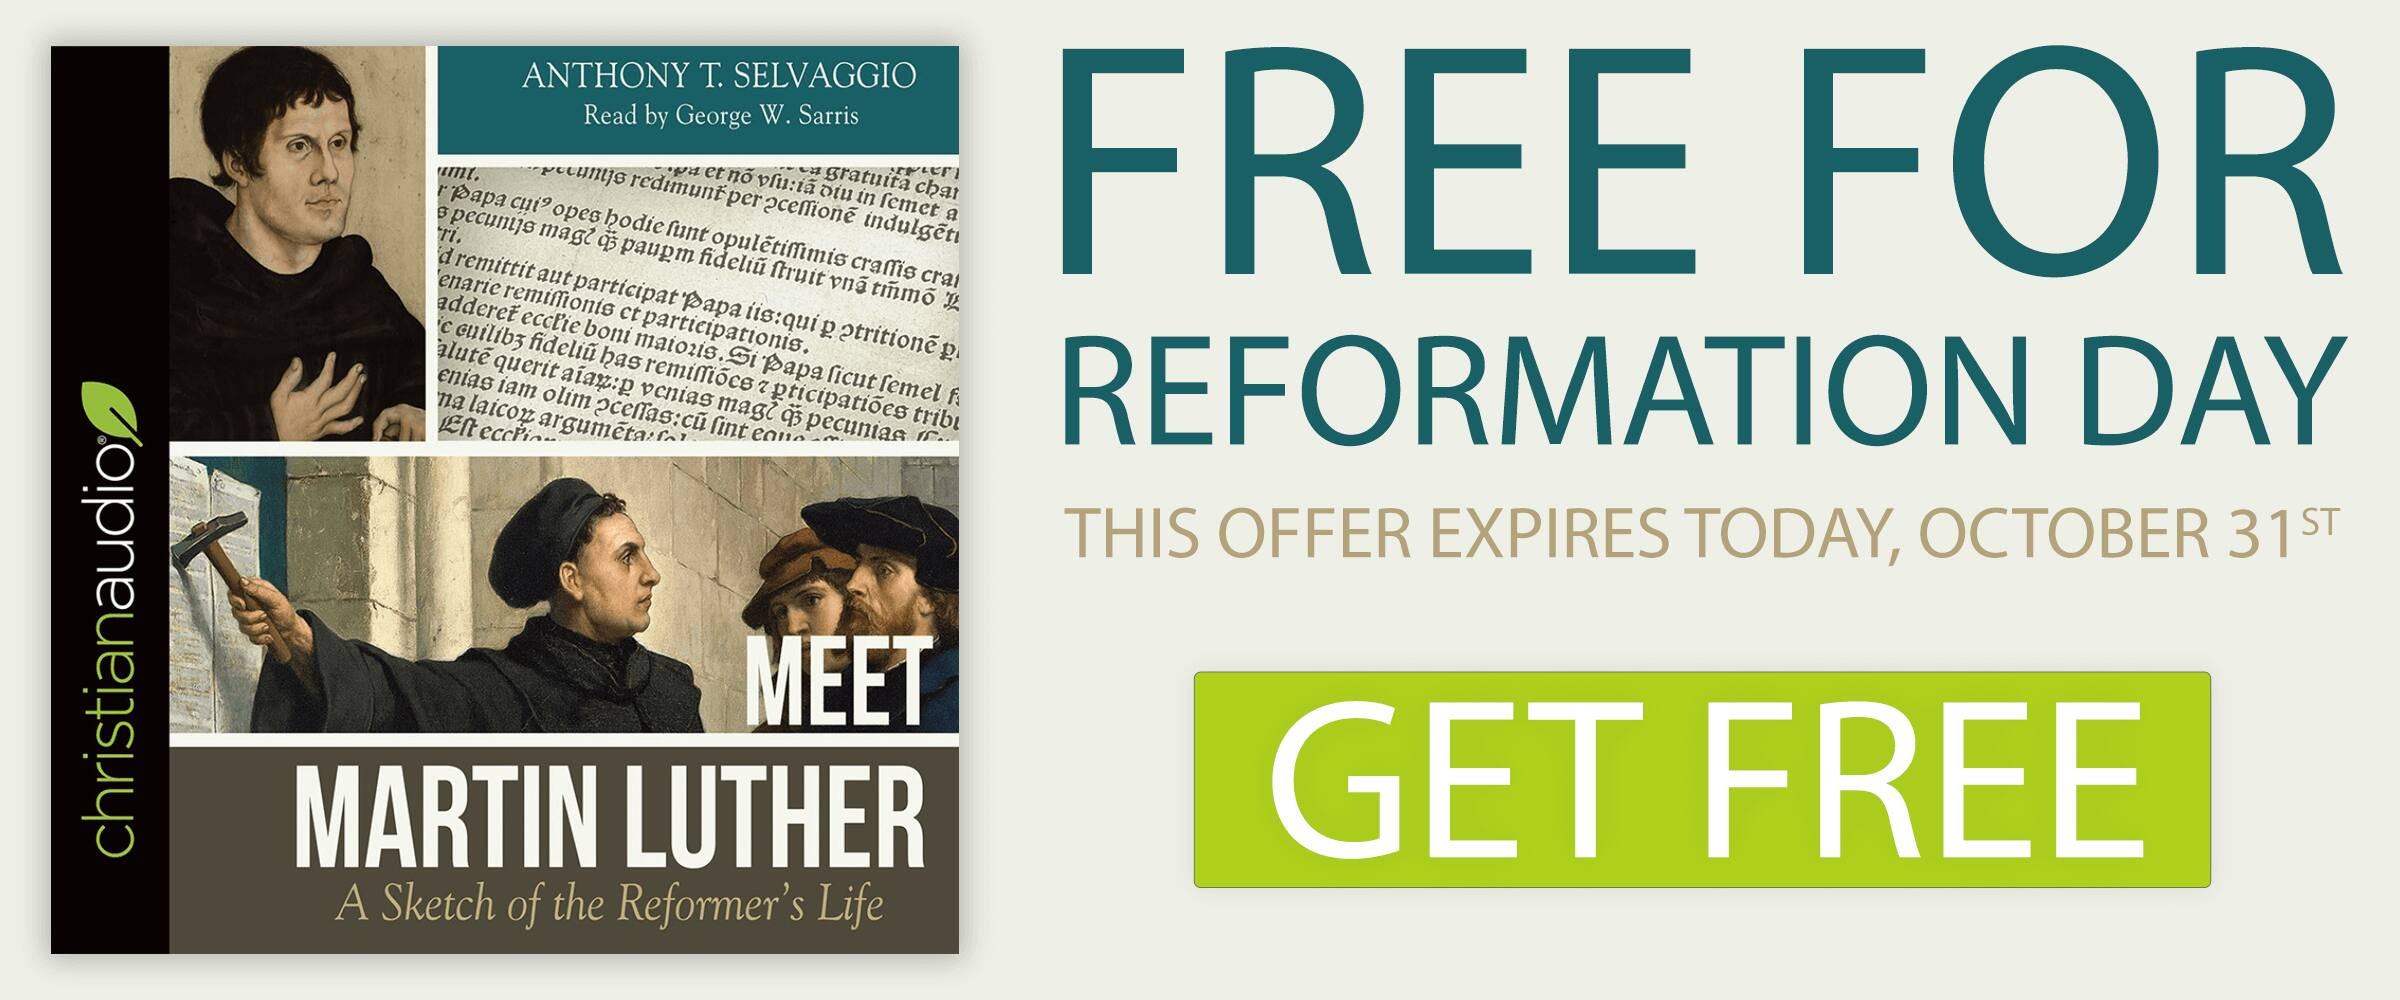 Free Audiobook - Meet Martin Luther: A Sketch of the Reformer's Life 10/31 only